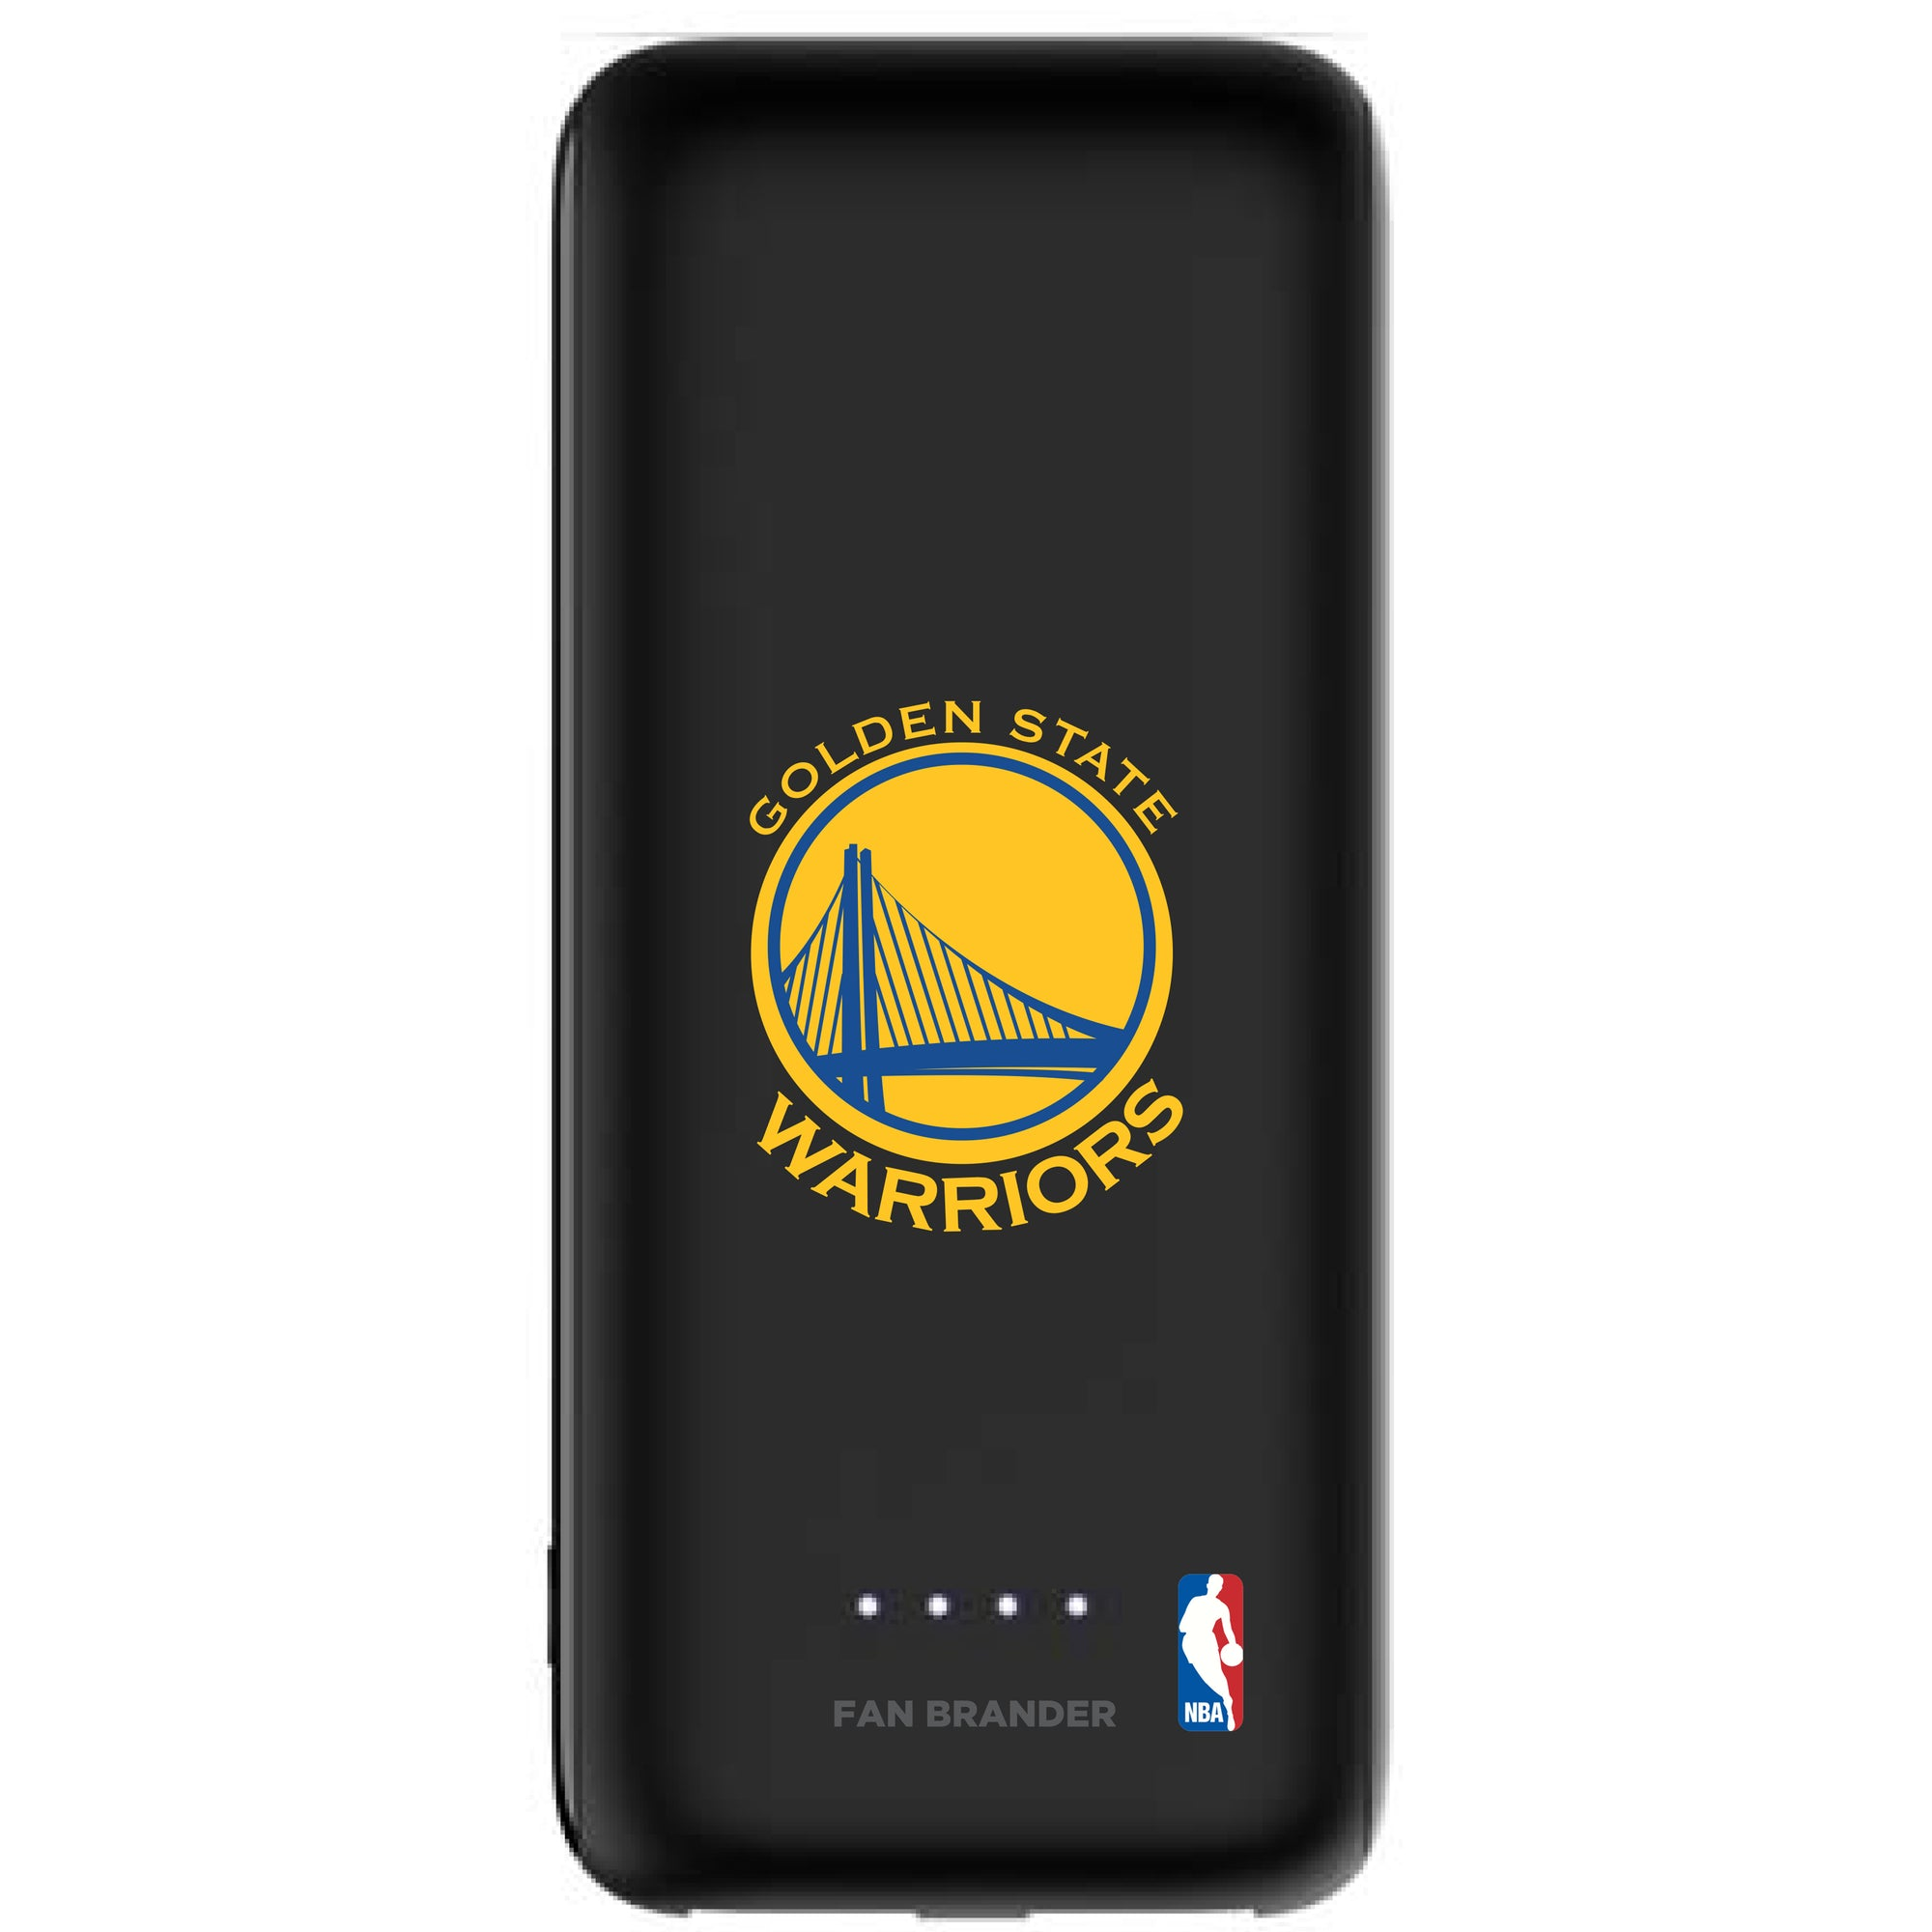 Golden State Warriors Power Boost Mini 5,200 mAH